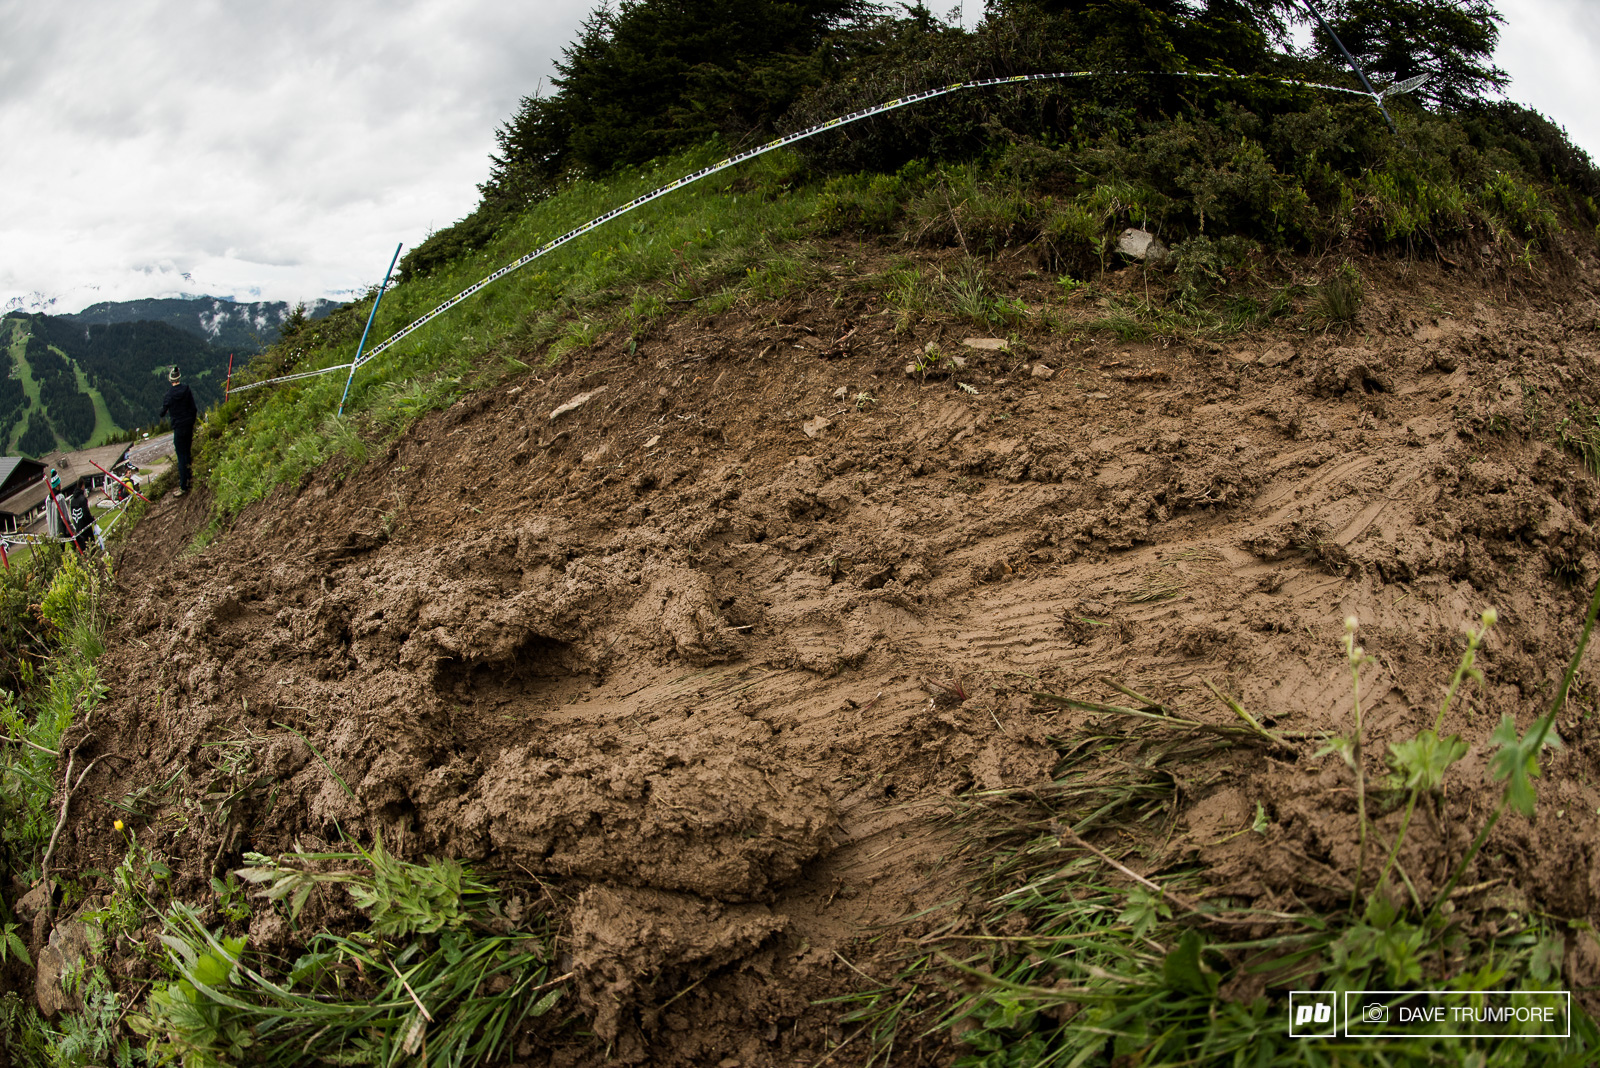 With not a rut or catch berm in sight it s going to be a sideways slip and slide until riders cut in a proper racing line.